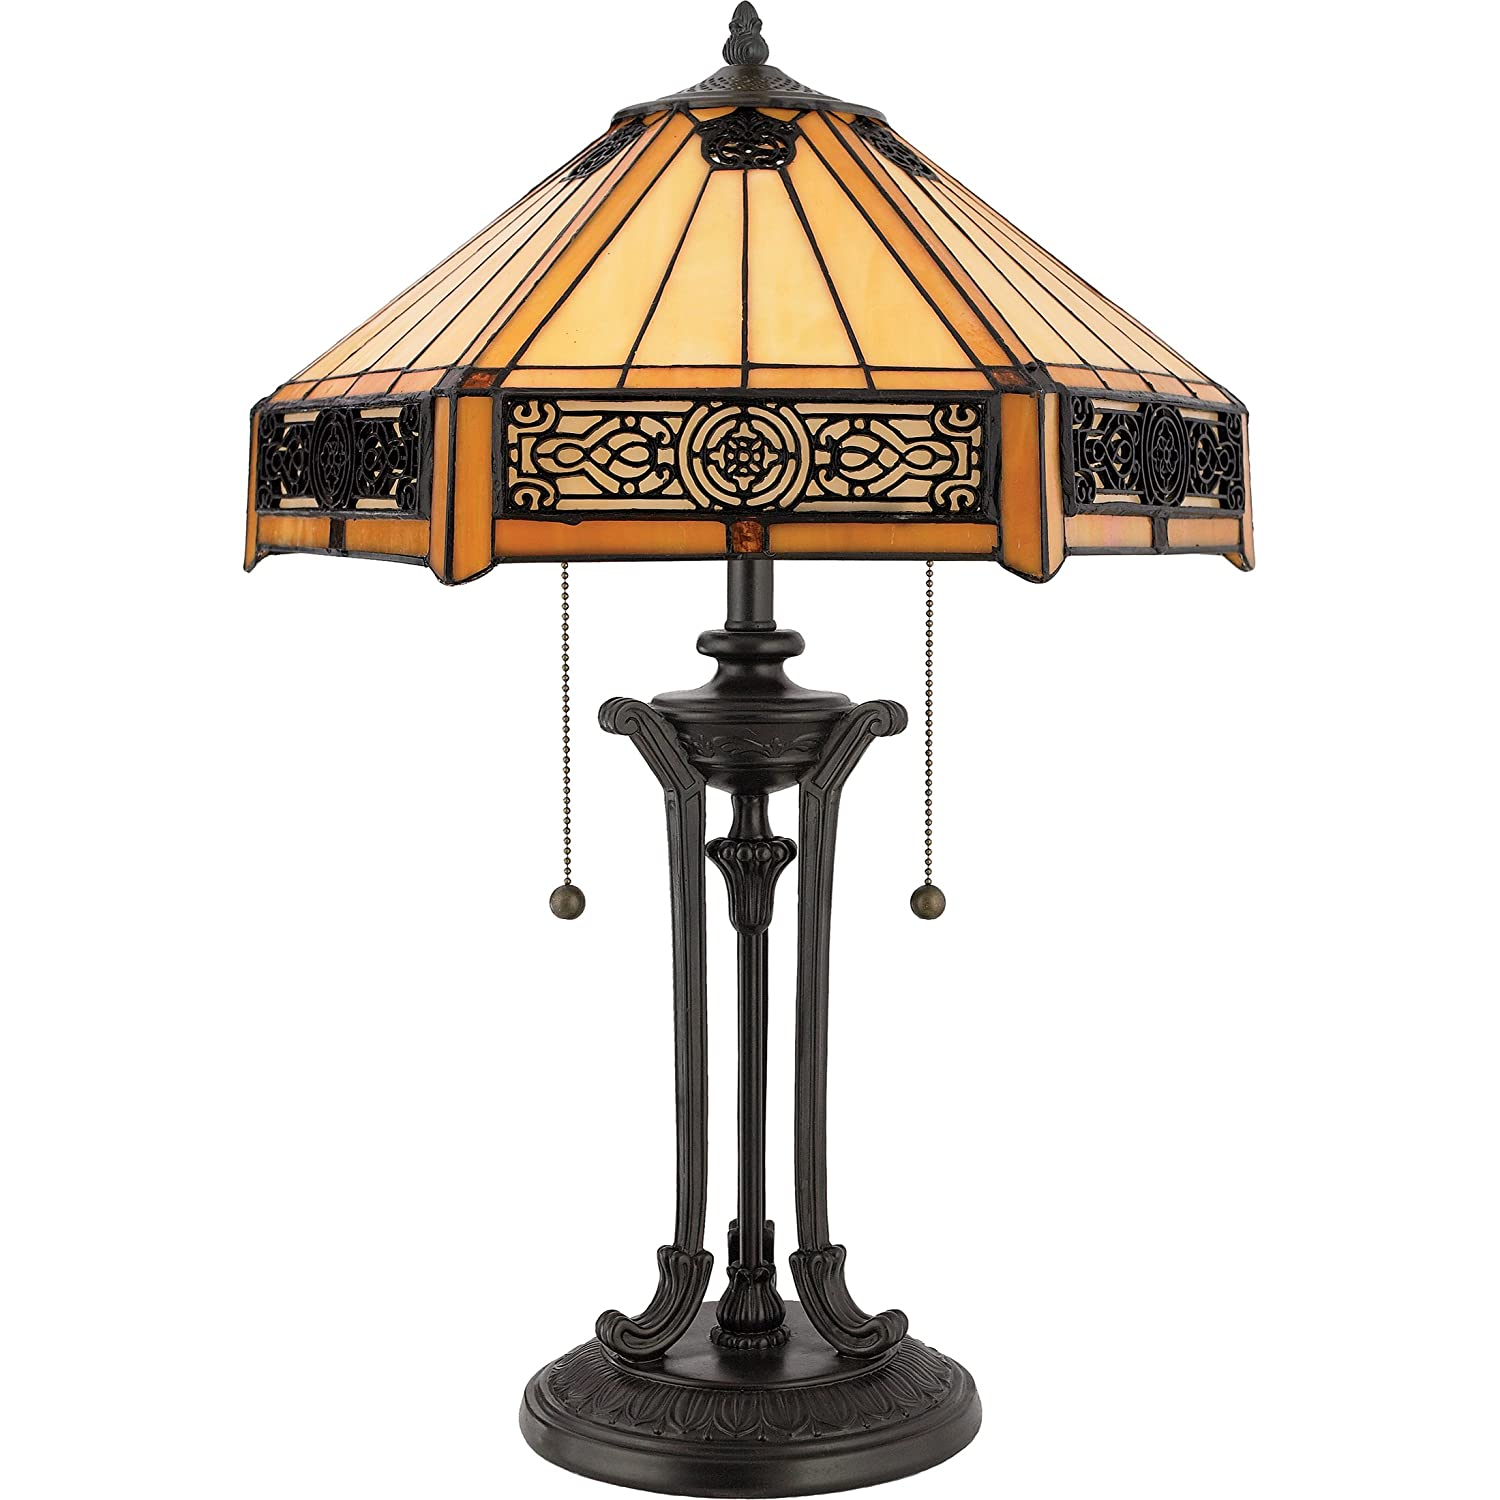 table style chandelier chinese discount lamp elegant furniture teal traditional lighting quoizel purple top art tiffany mission fine lamps base